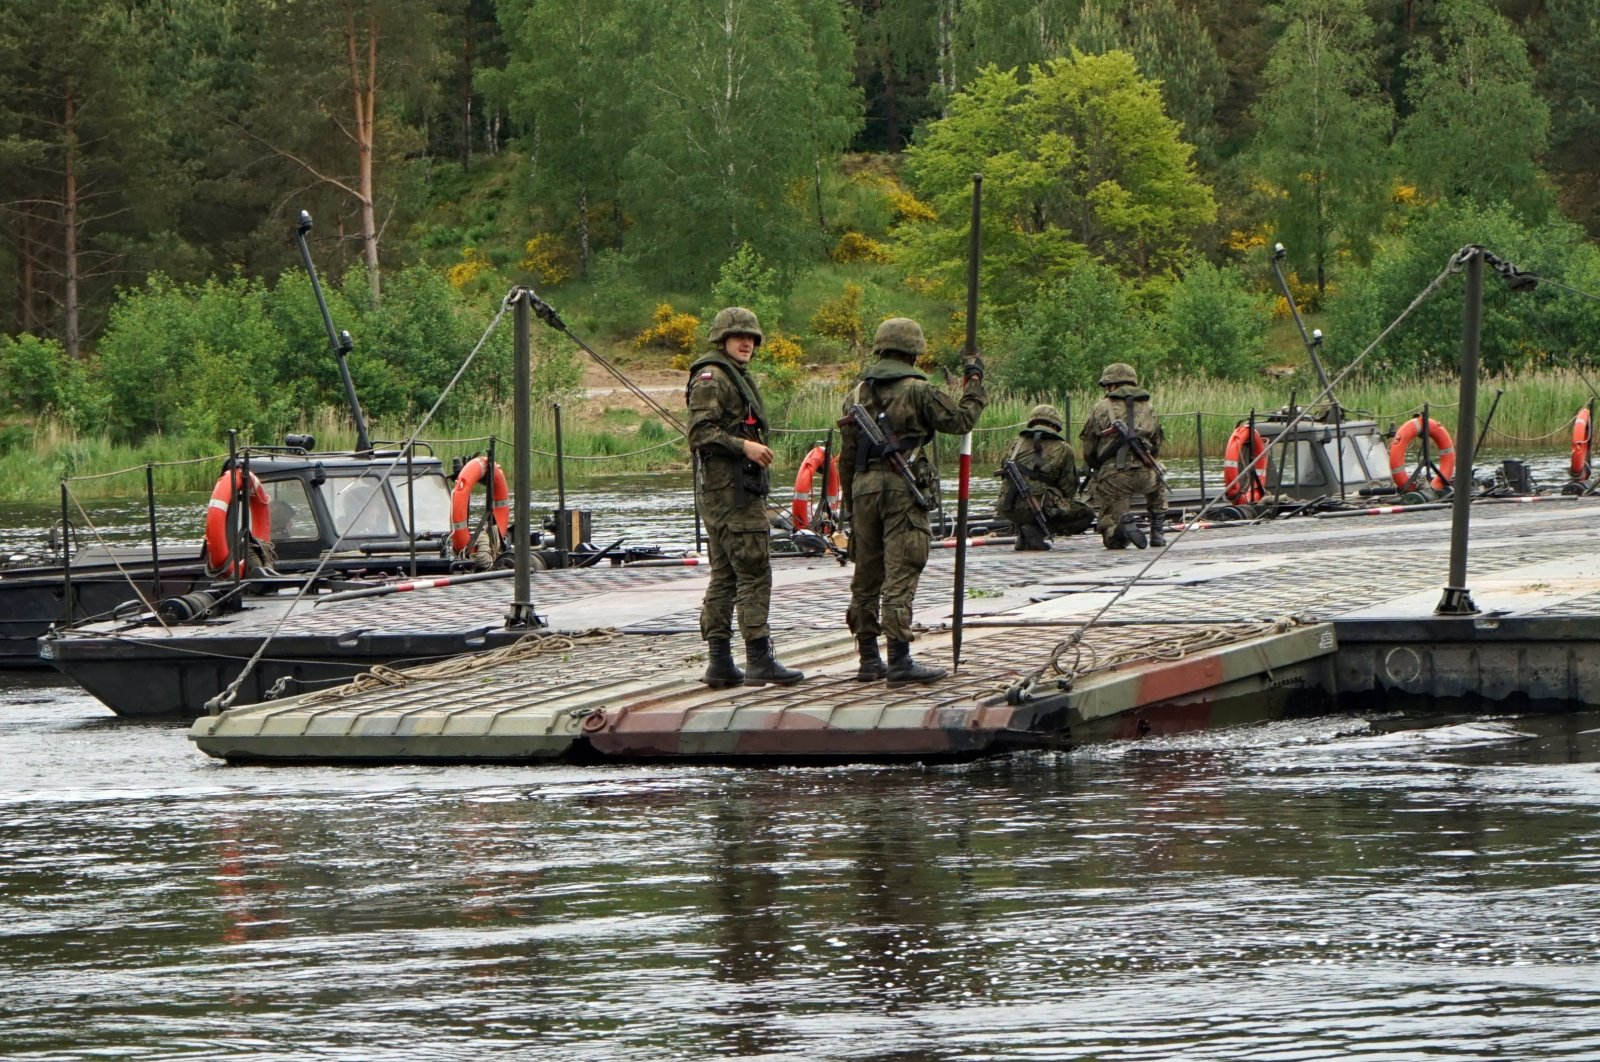 Polish soldiers build a pontoon bridge during exercises at a military training ground in Drawsko Pomorskie, north-western Poland, June 7, 2020. (EPA Photo)